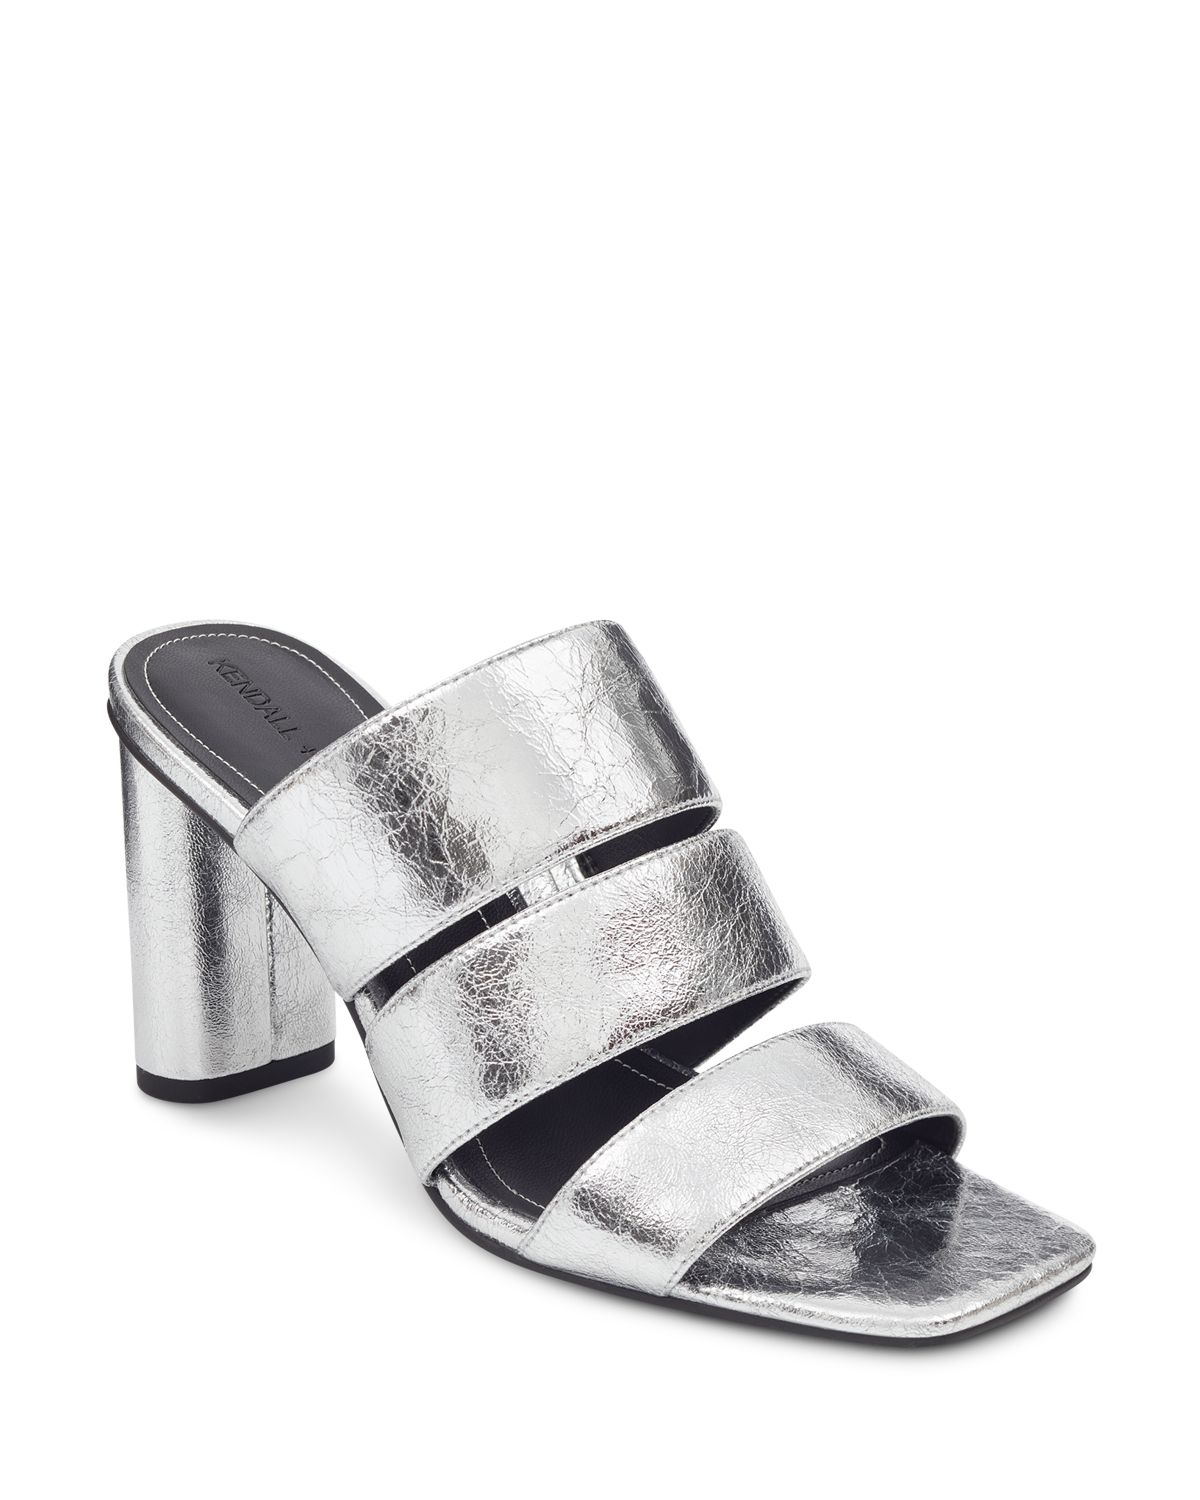 Kendall And Kylie Women's Leila Metallic Leather Block Heel Slide Sandals